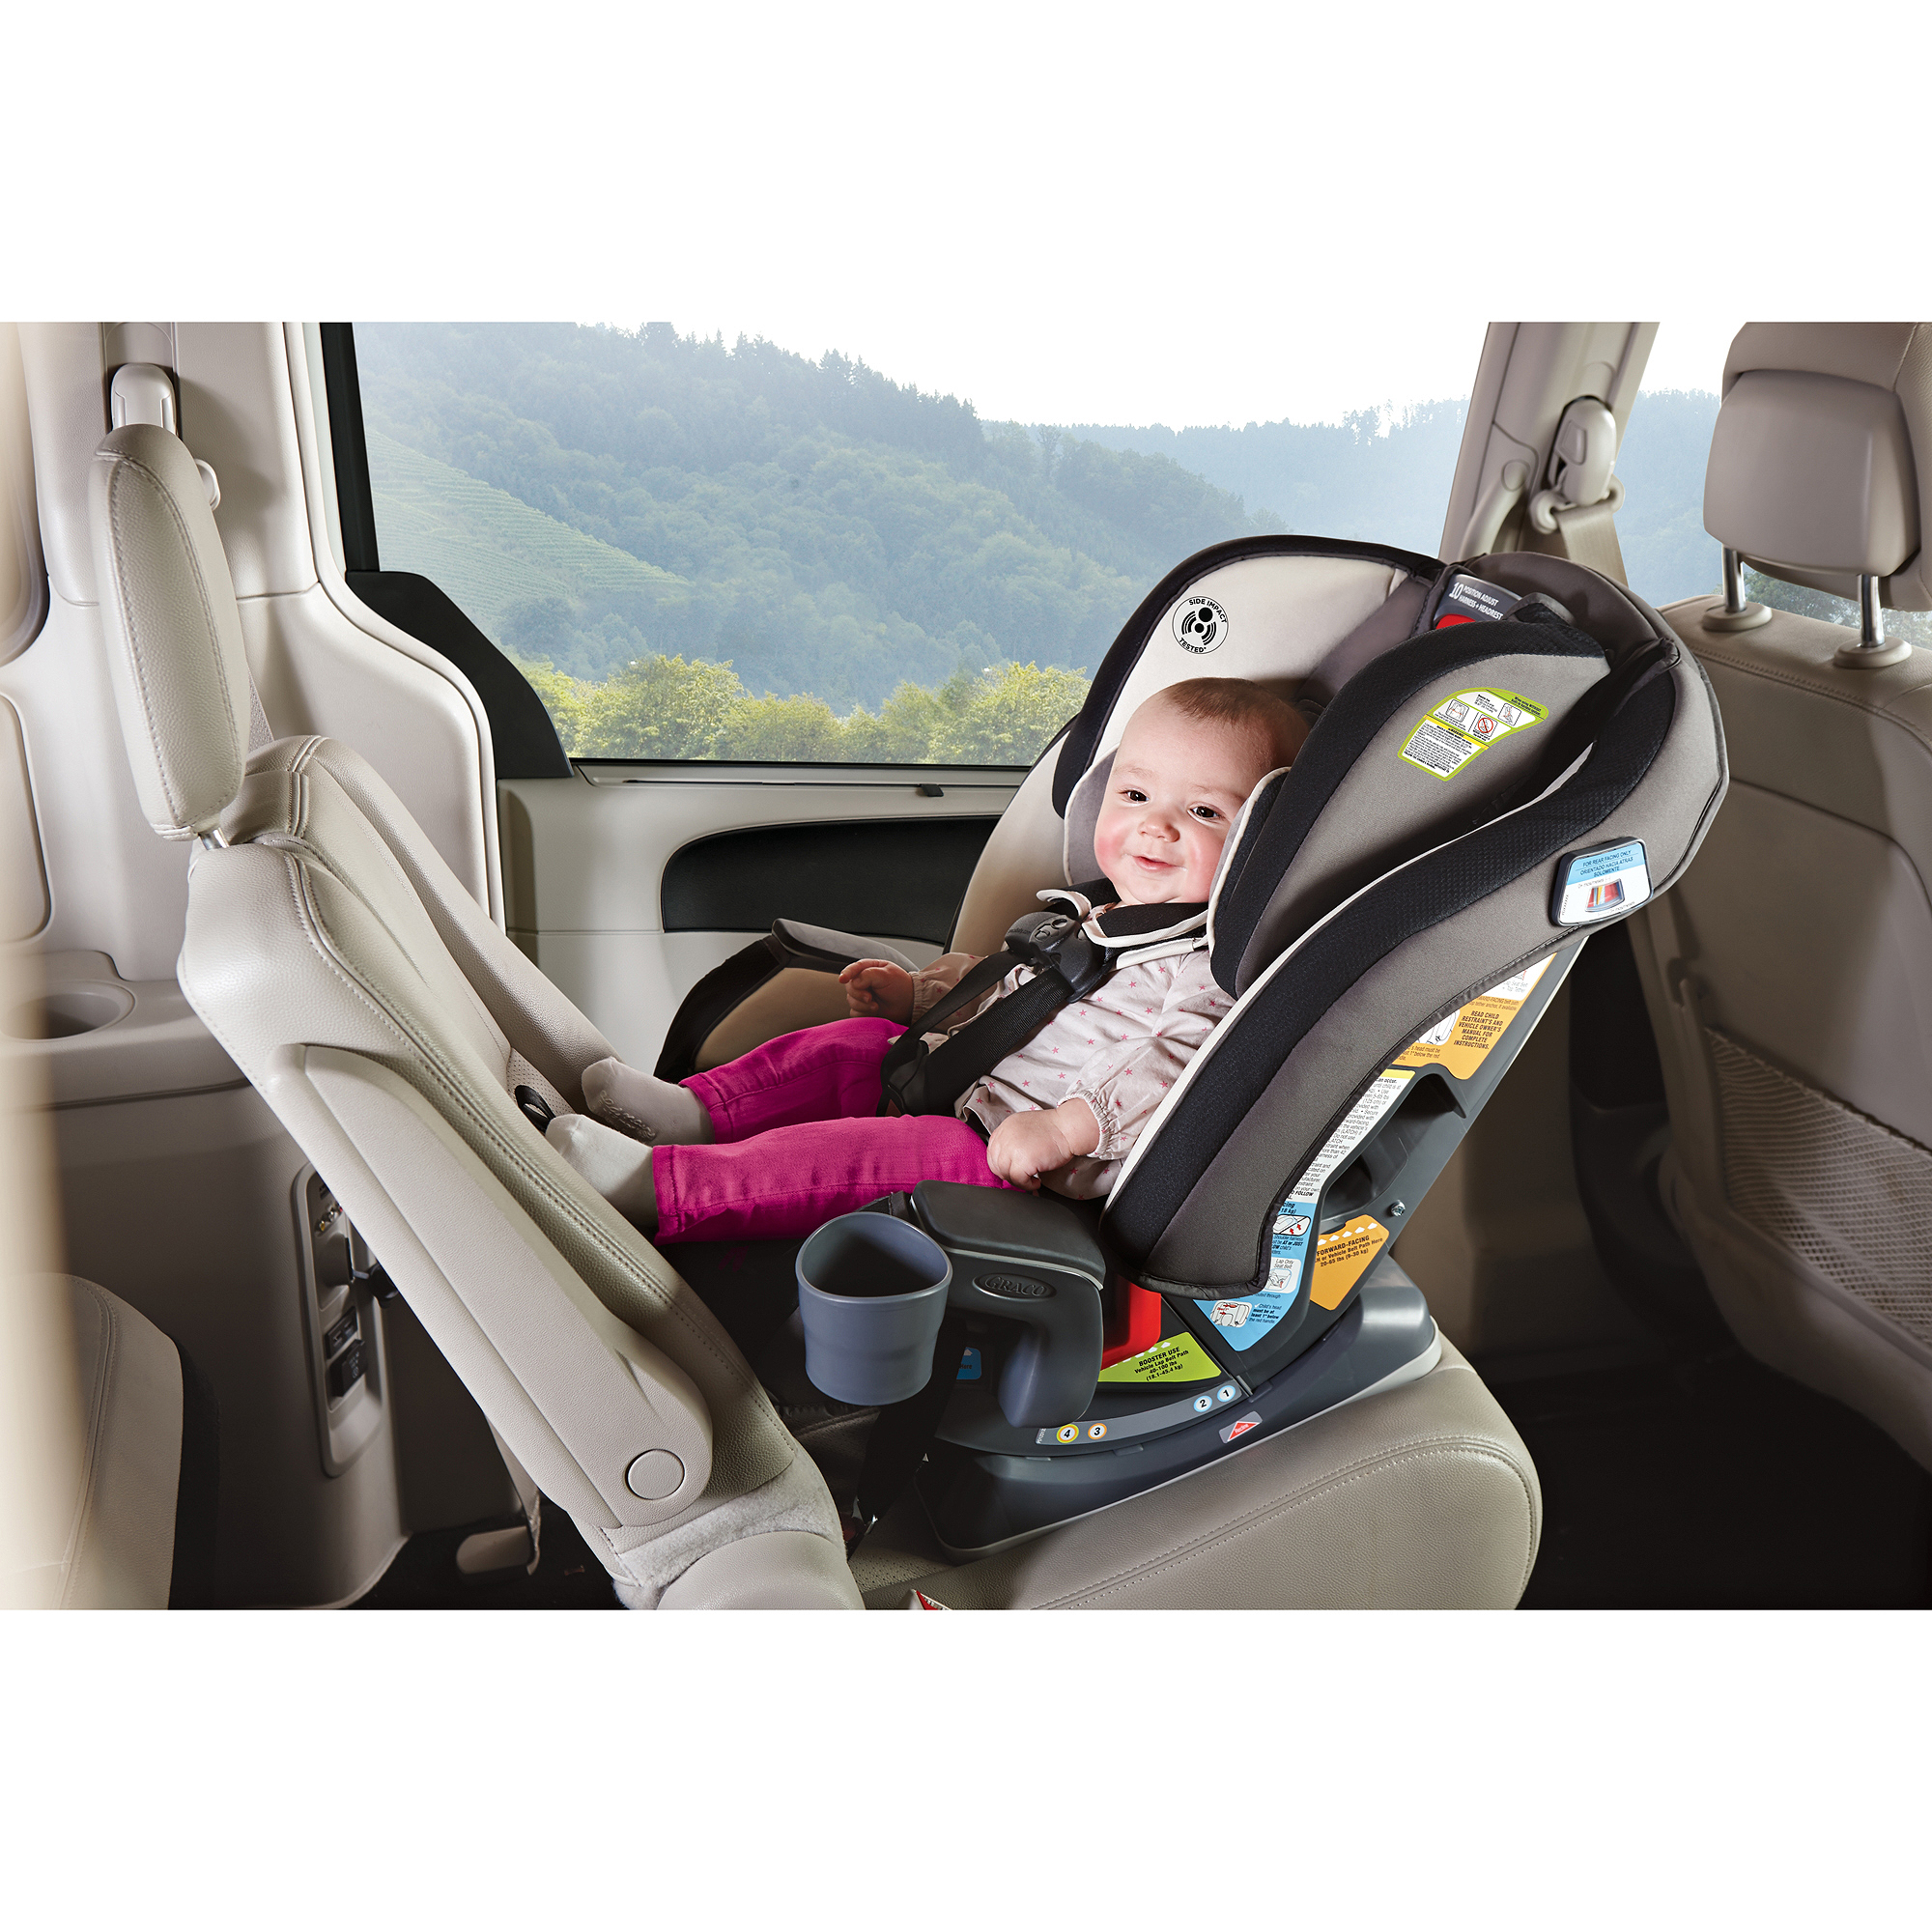 Graco MILESTONE All in 1 Convertible Car Seat Choose Your Pattern | eBay